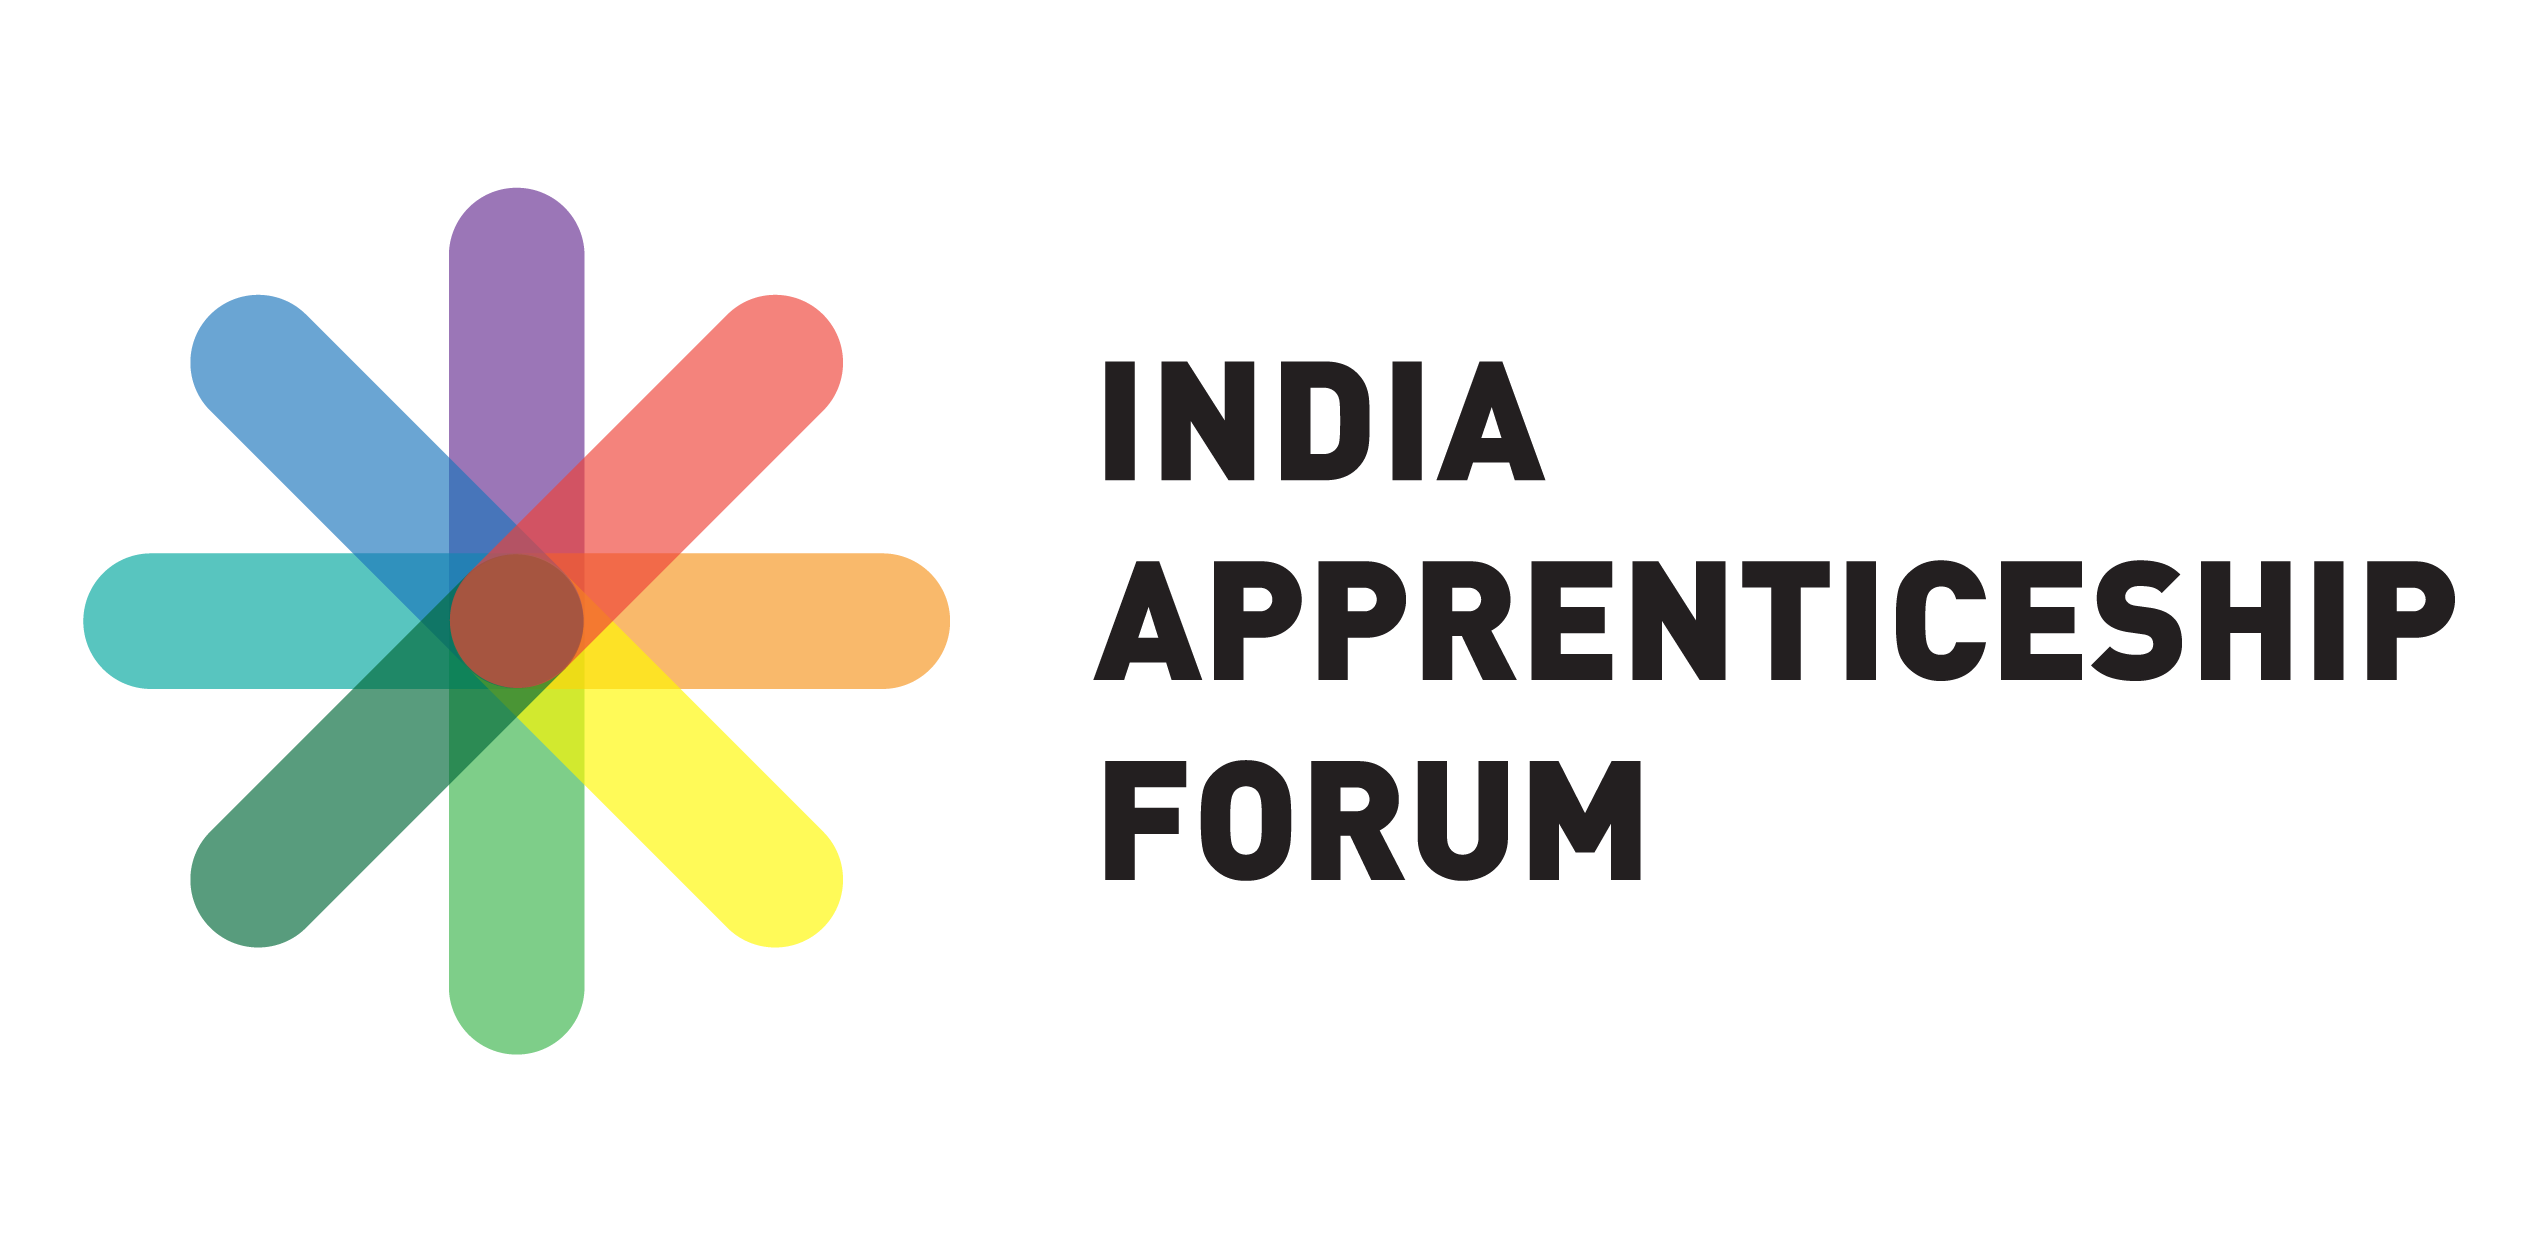 INDIA APPRENTICESHIP FORUM